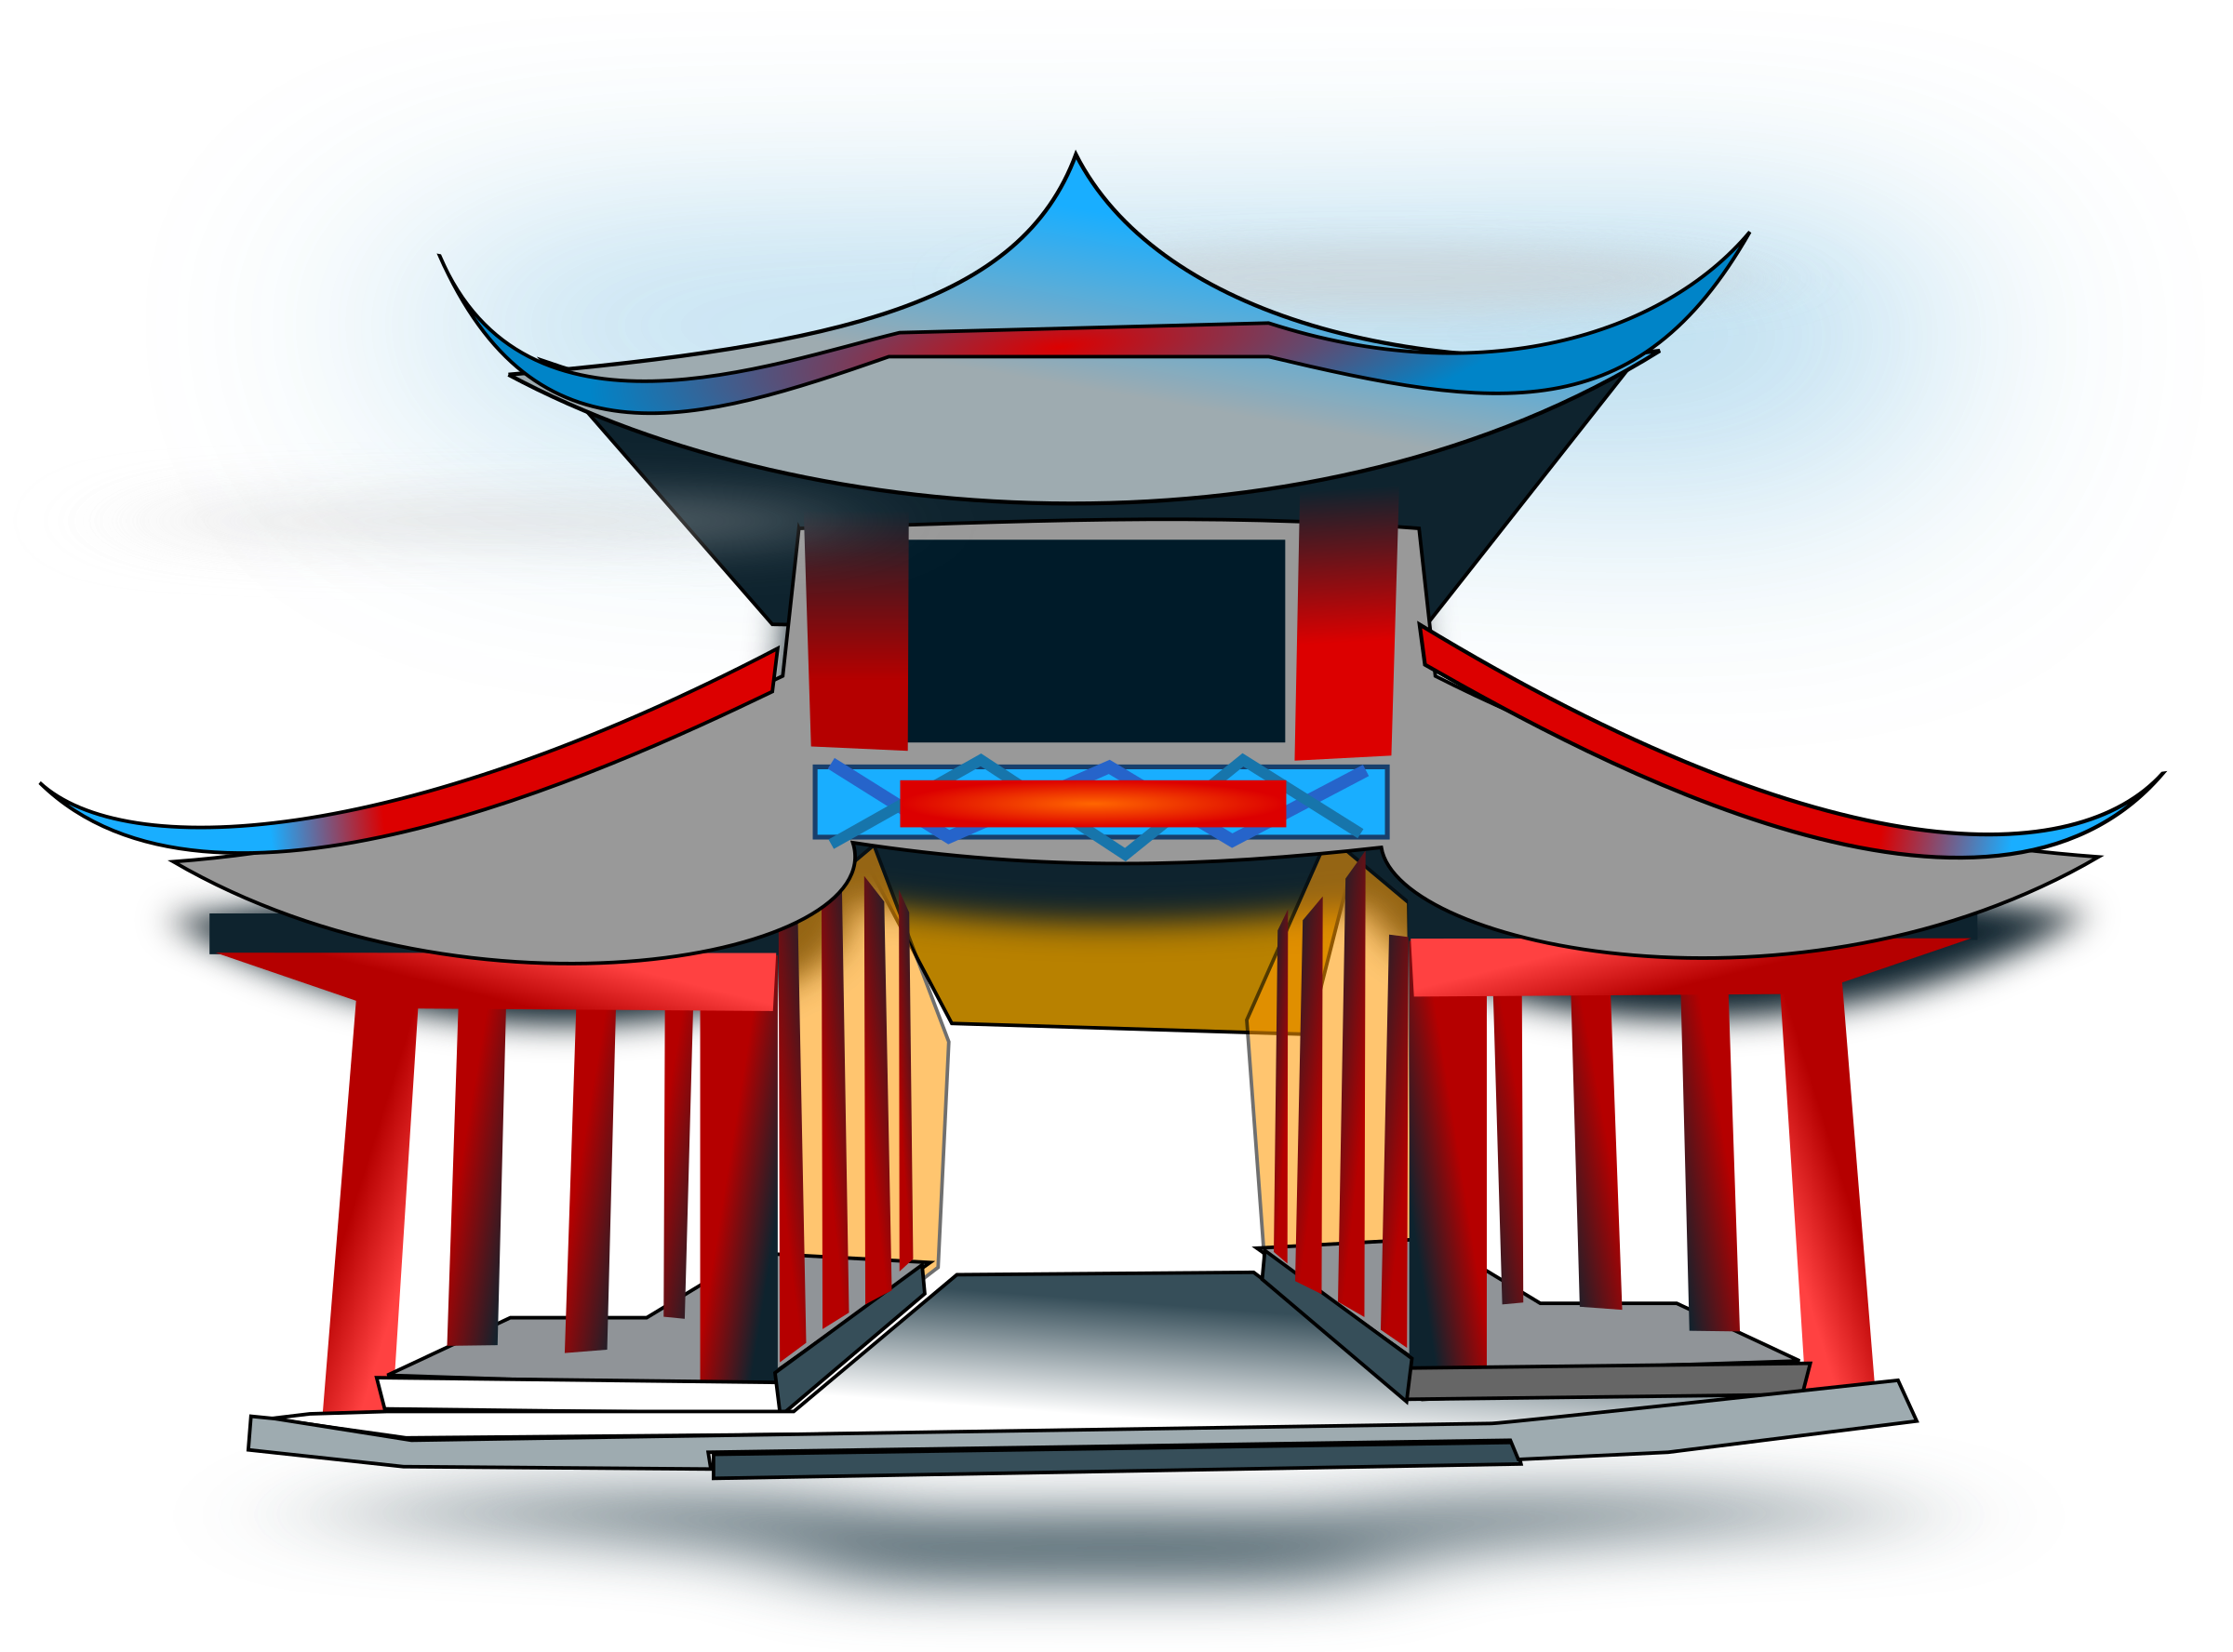 Architecure big image png. Palace clipart pagoda chinese